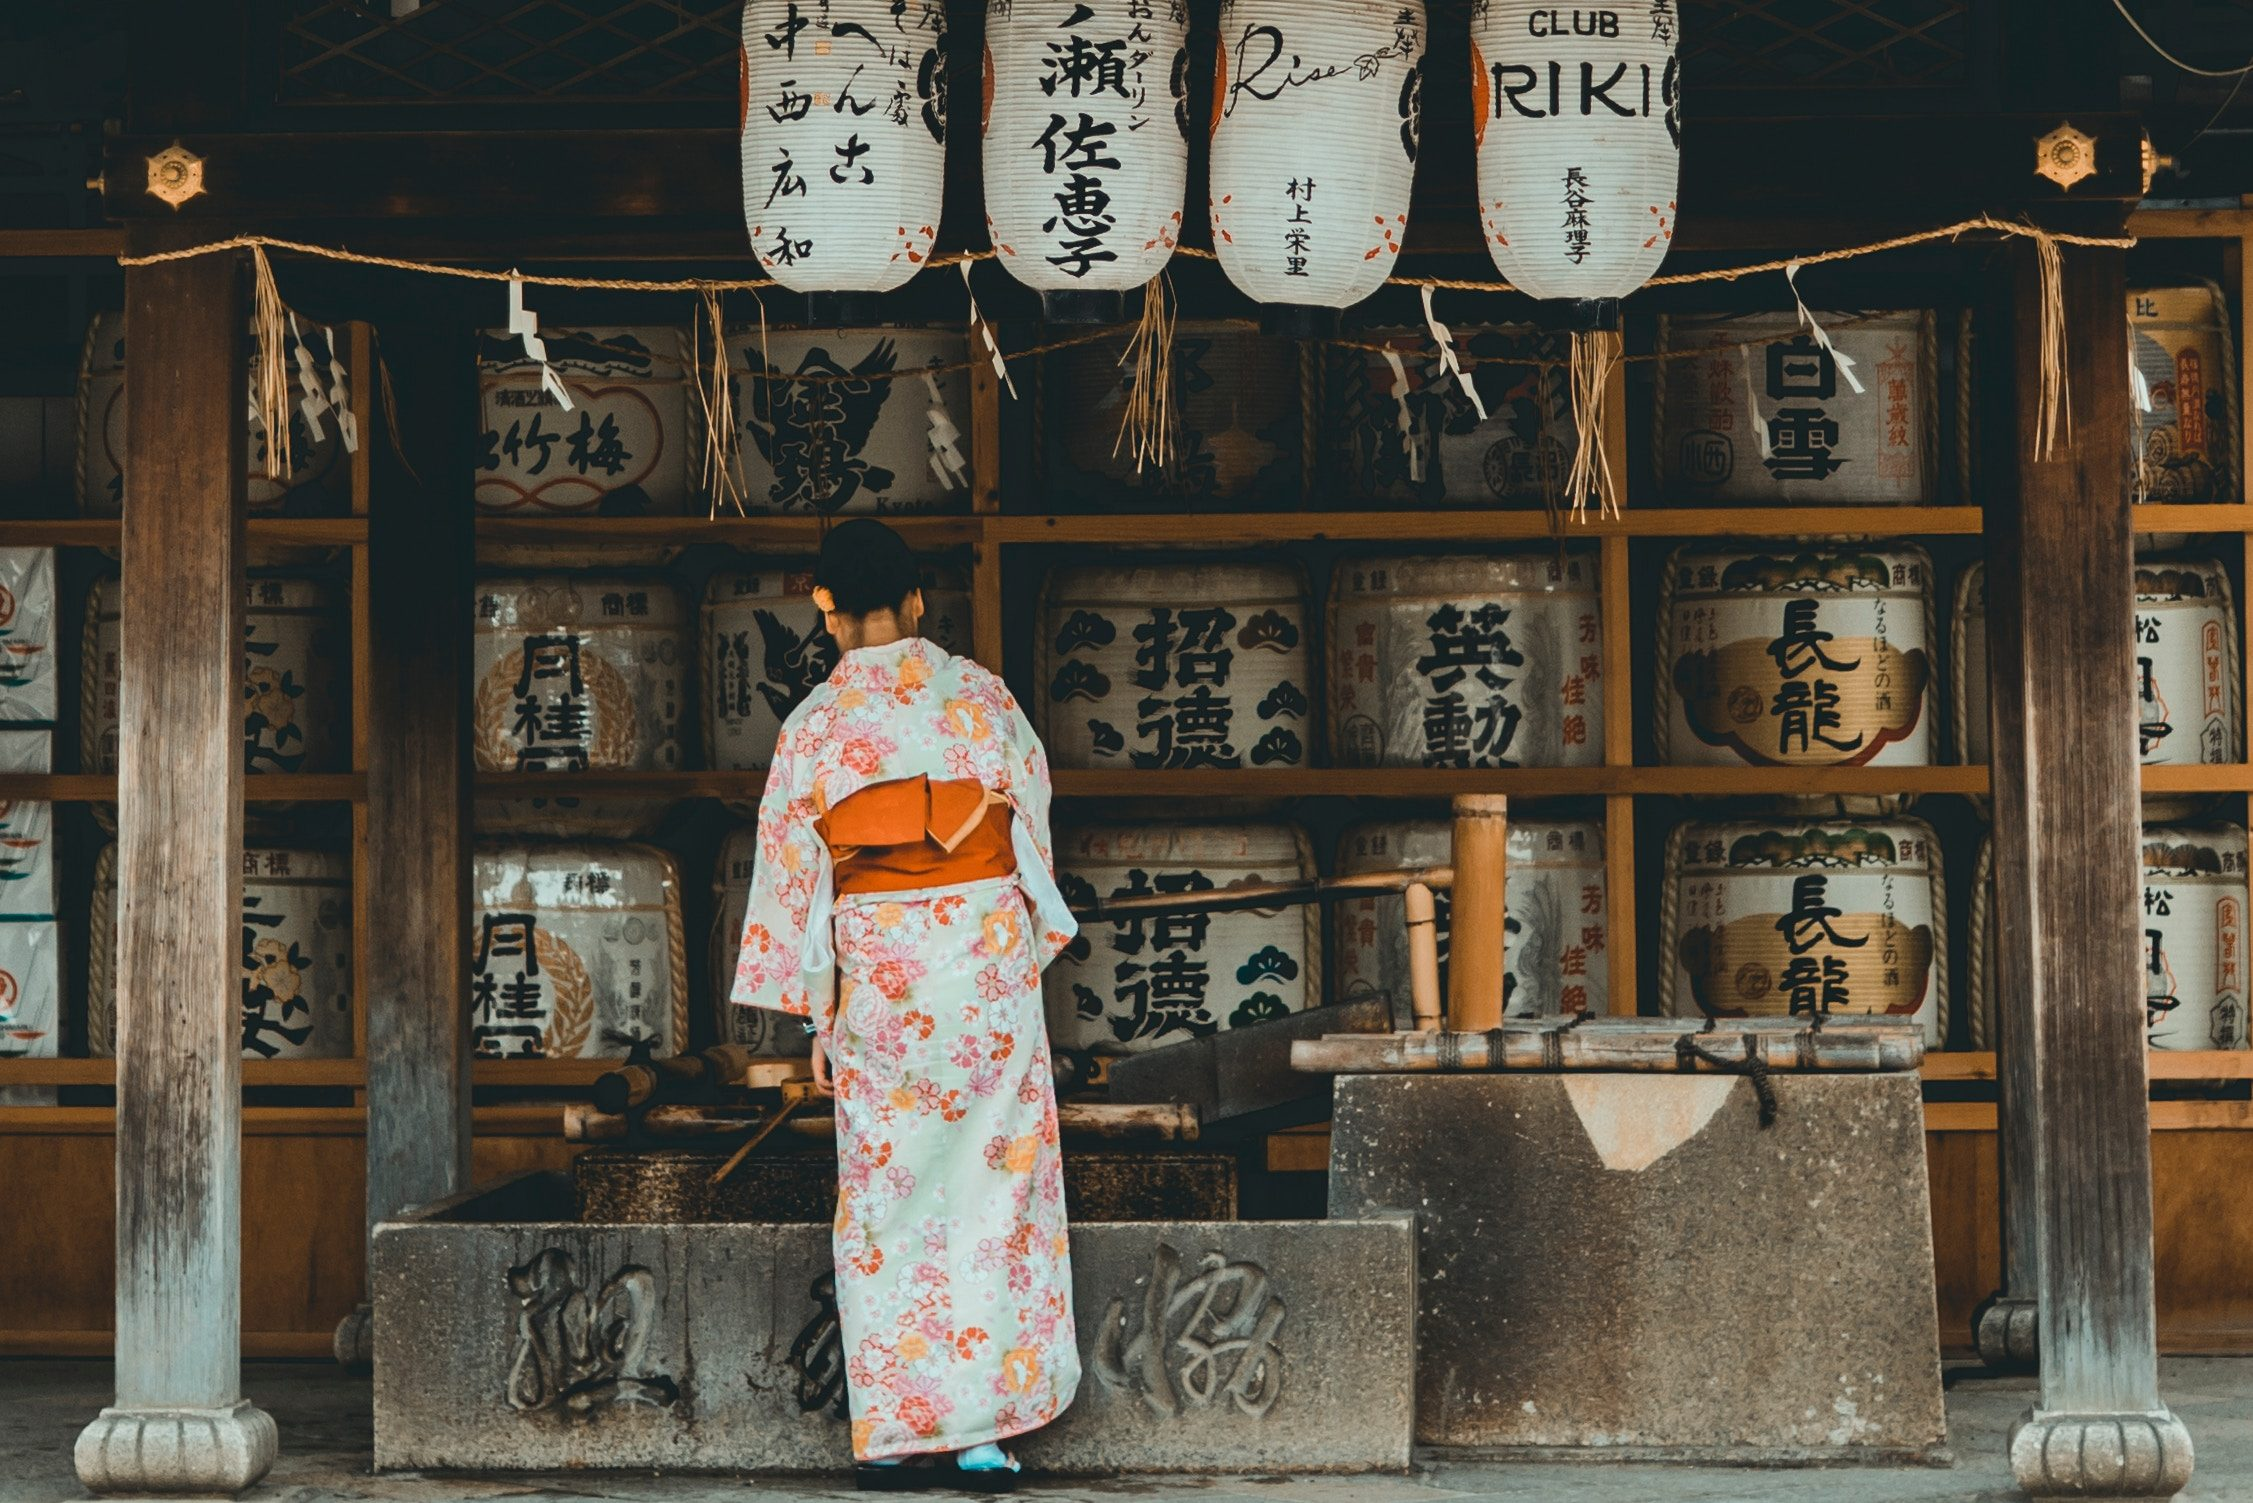 The woman with a mission #1: Patterns of love and the kimono